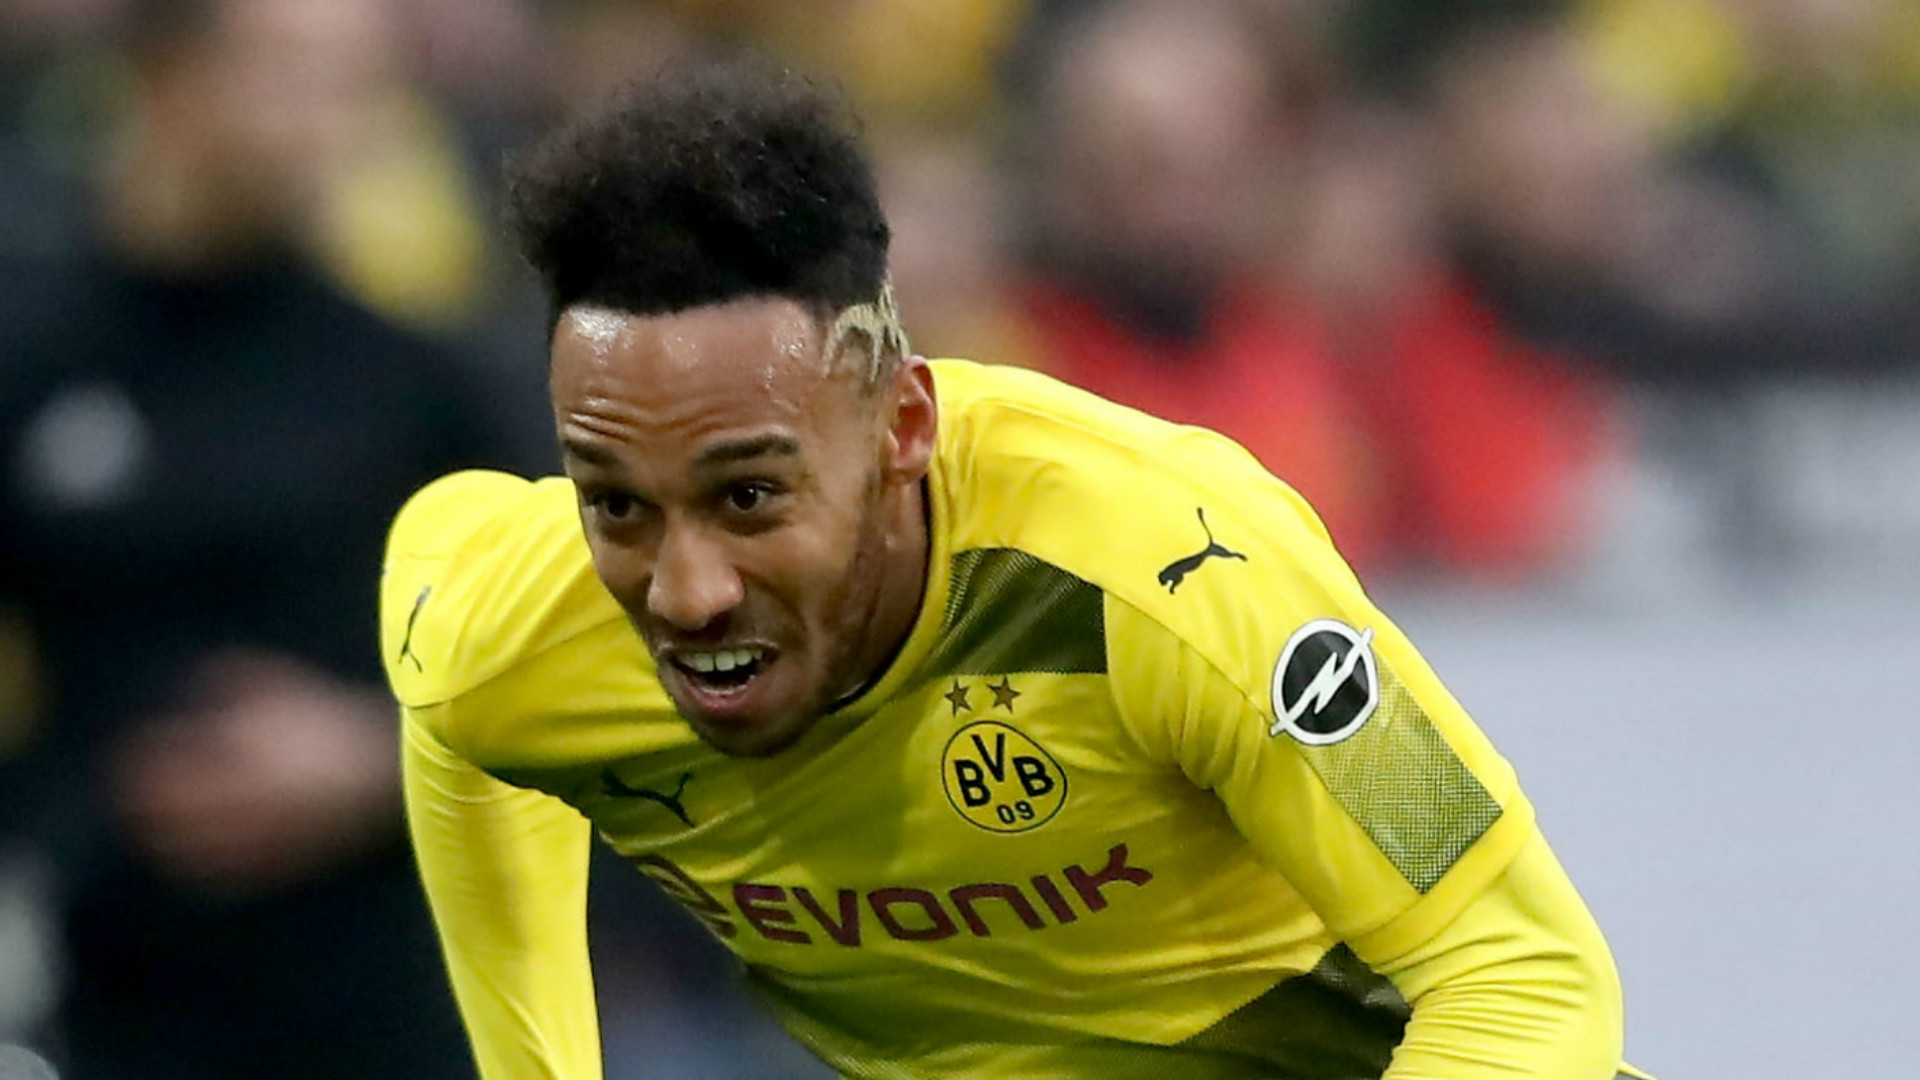 pierre emerick aubameyang borussia dortmund ty57cb3pndu12frd298mgup4 - ROUND-UP of 30/1/2018 TRANSFER NEWS, DONE DEALS AND RUMOURS